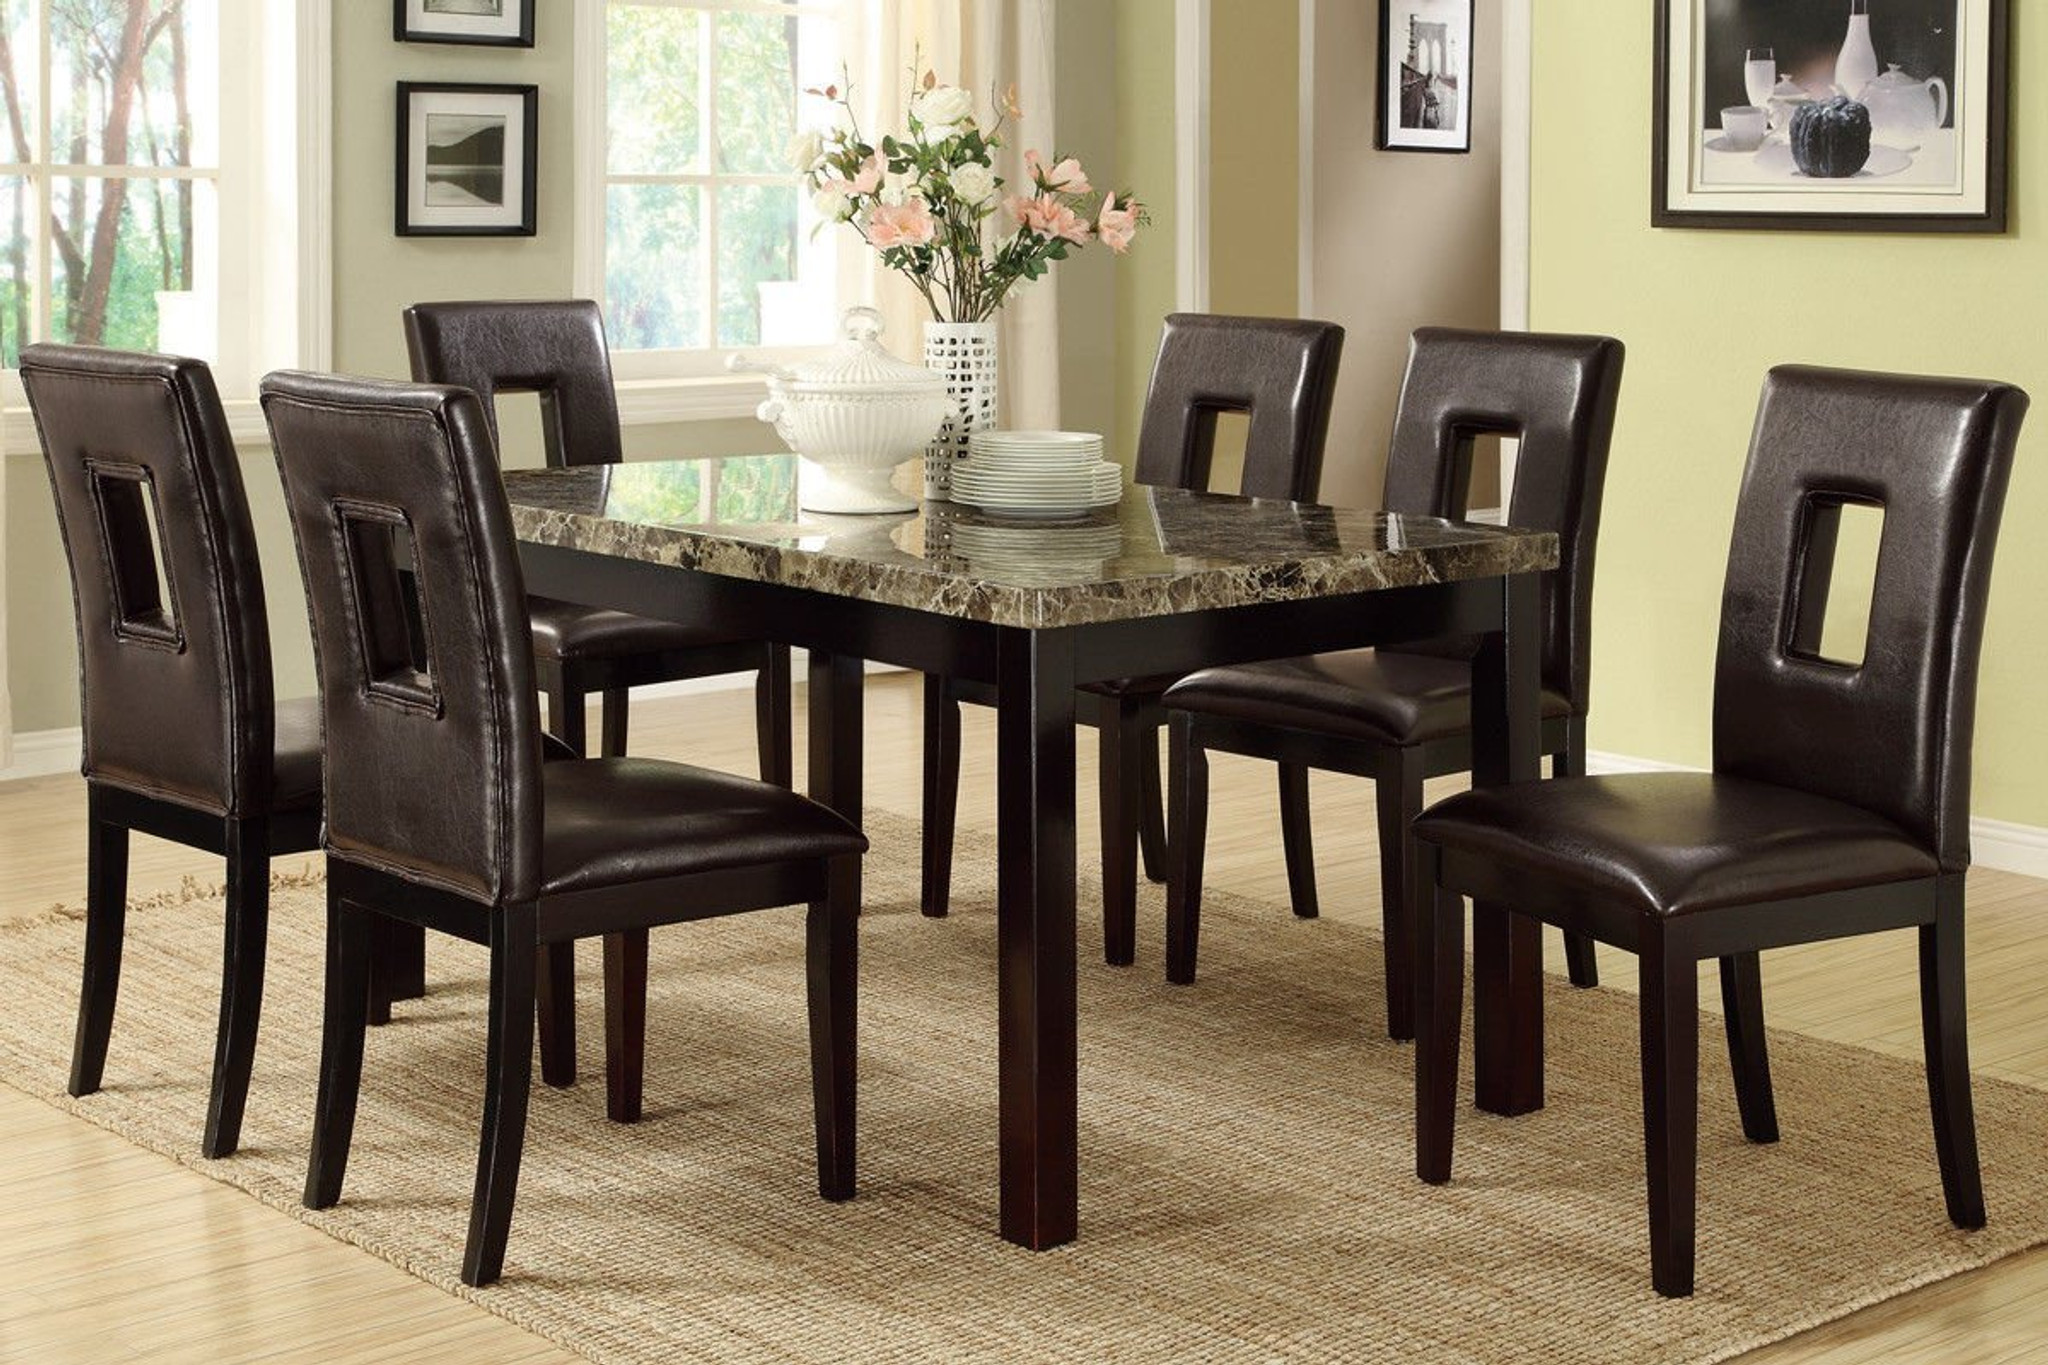 7pcs Dark Brown Marble Look Table Top Dining Room Set Km Home Furniture